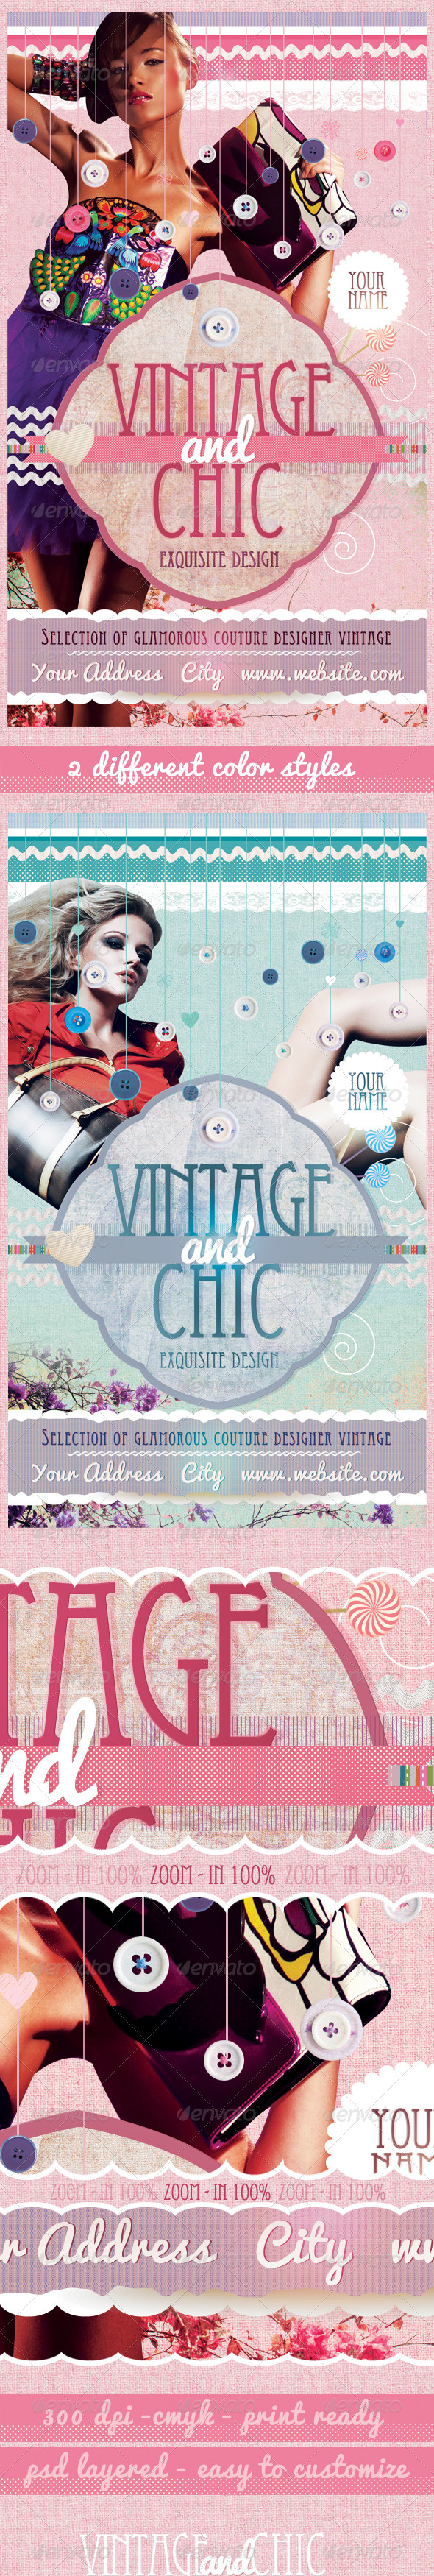 Vintage and Chic Flyer Template - Commerce Flyers